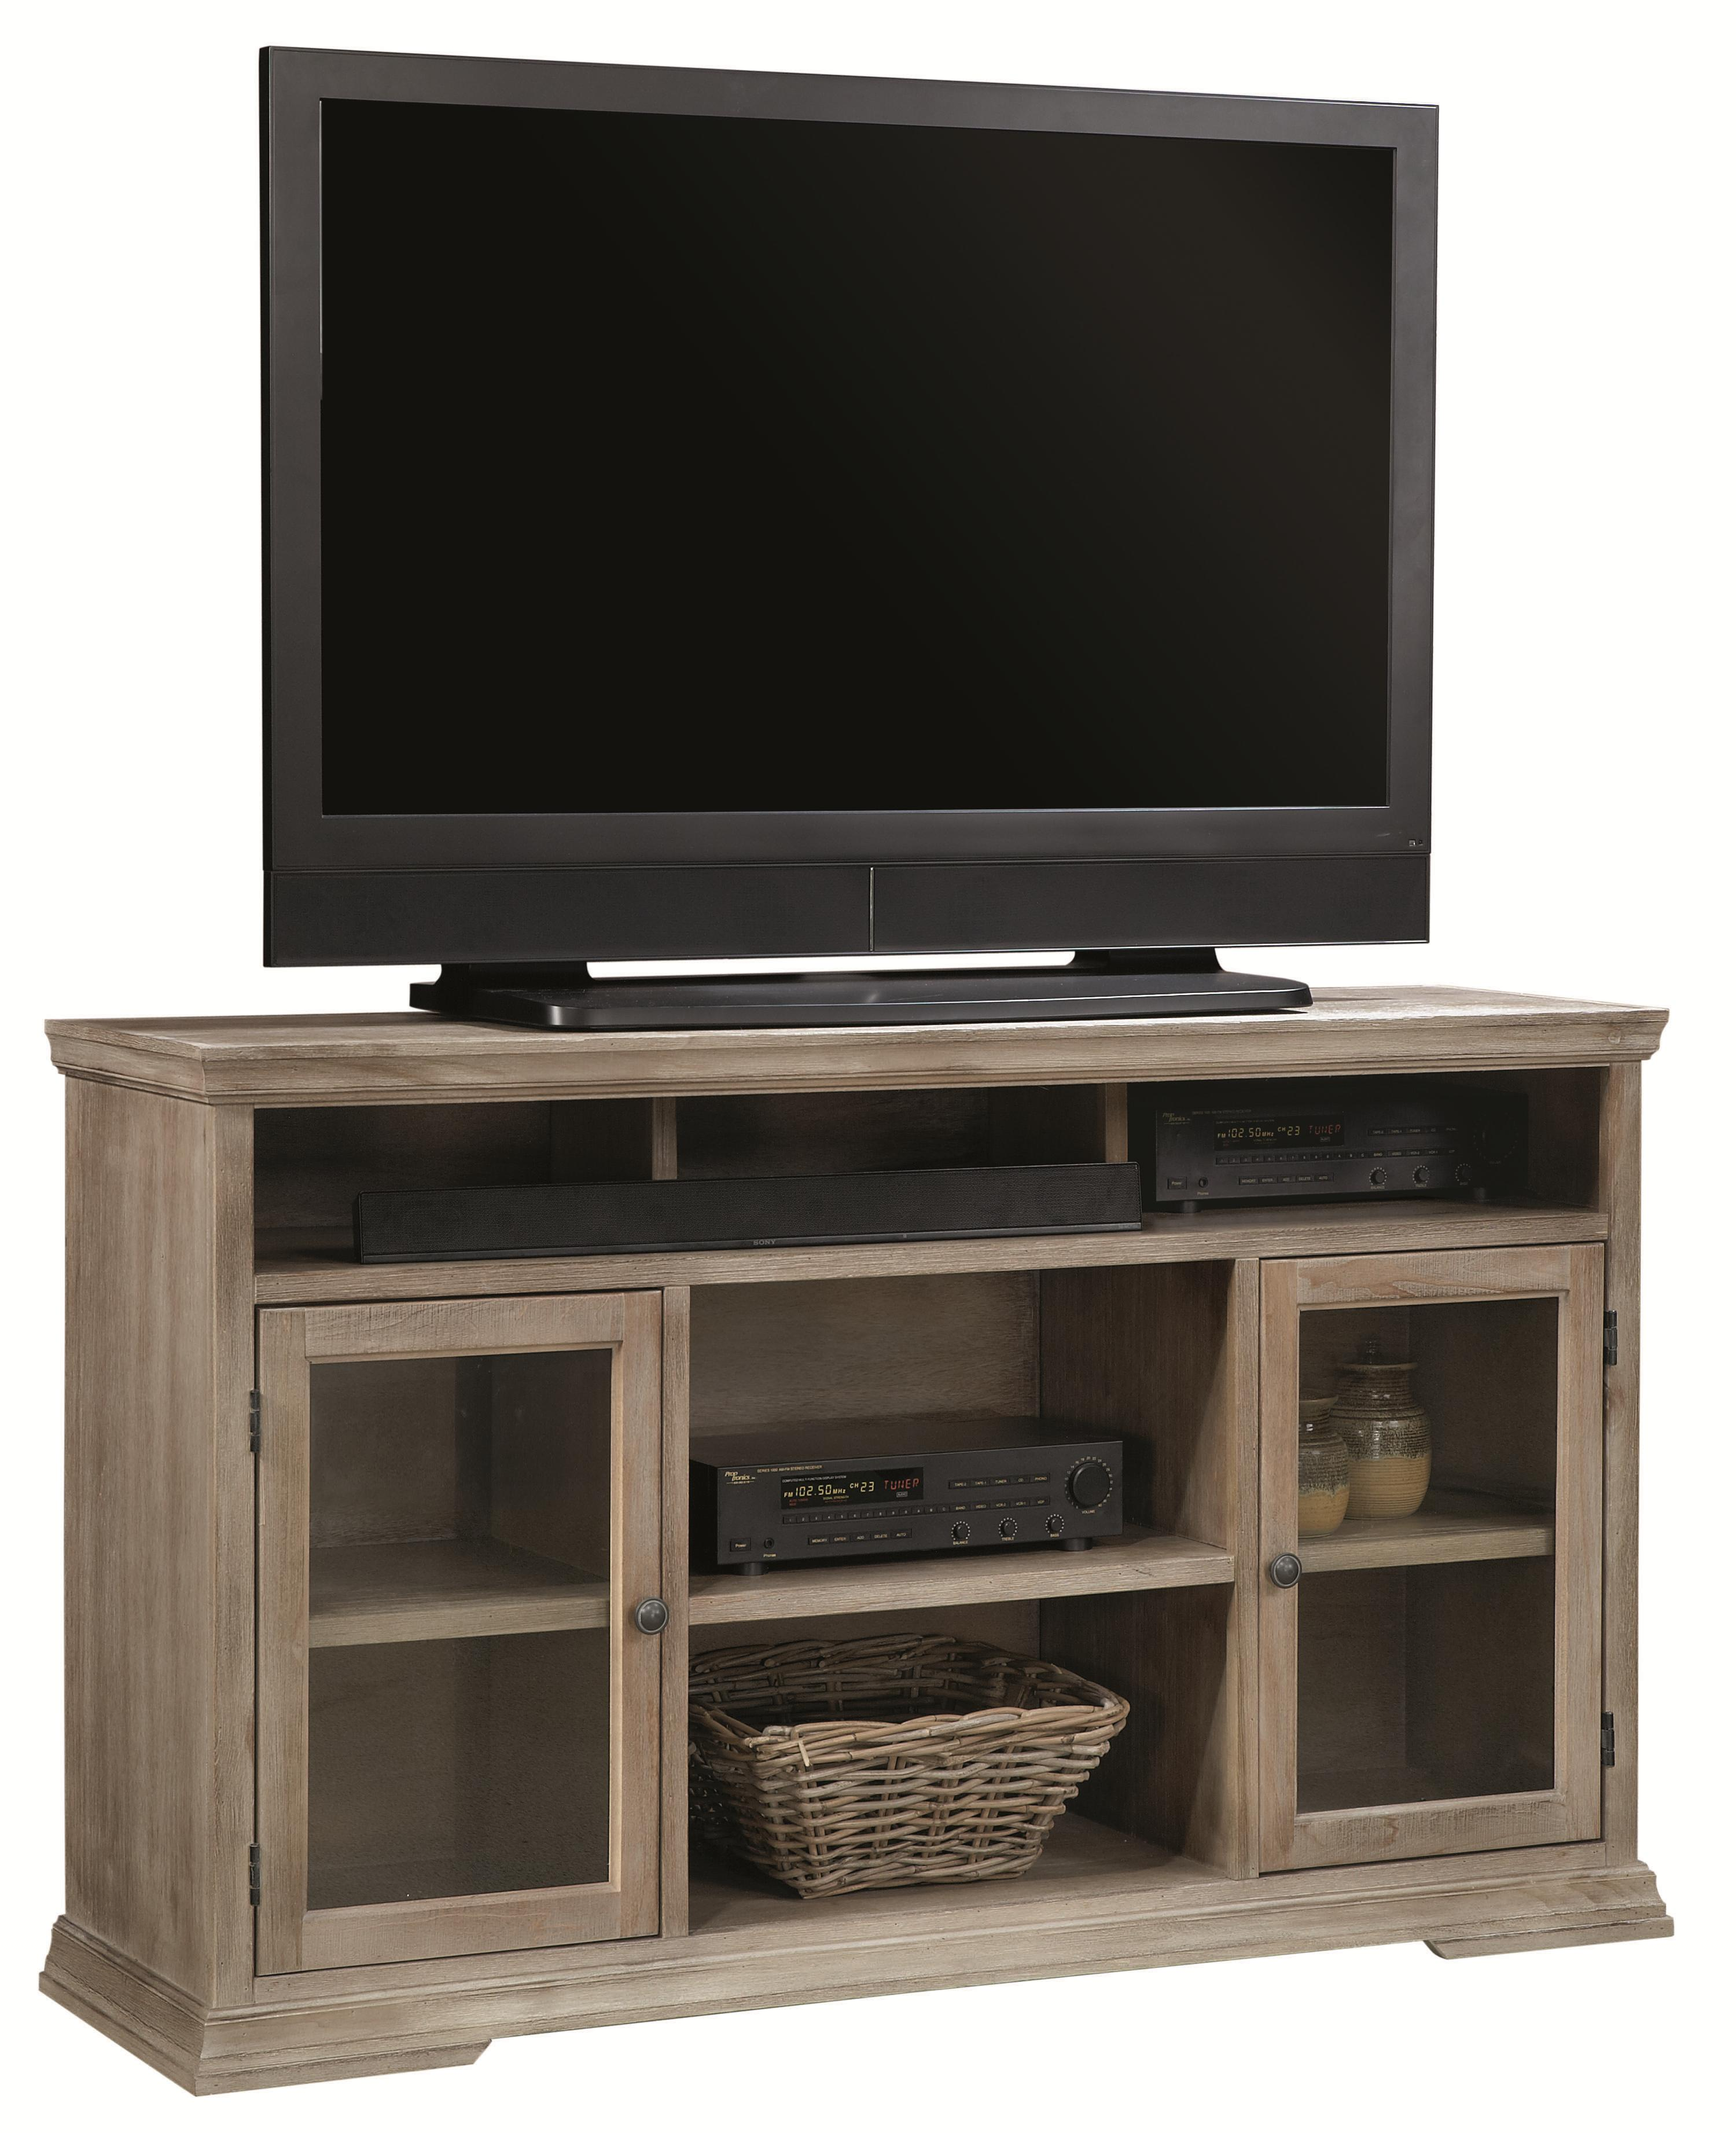 Tv Panel Kaufen Canyon Creek Tv Console By Aspenhome At Homeworld Furniture